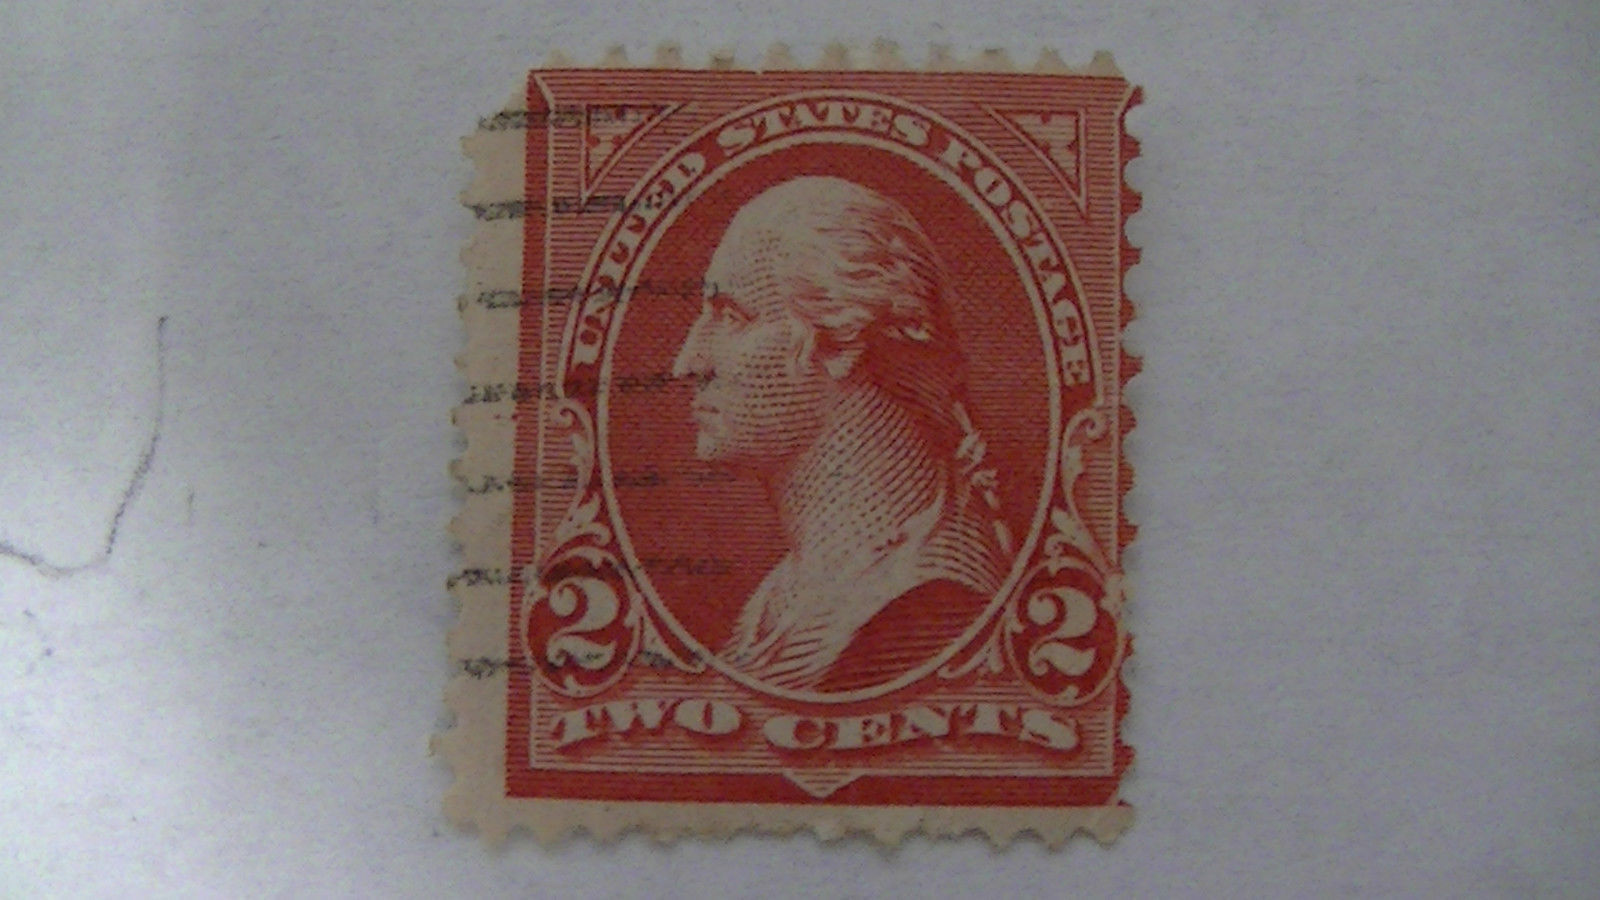 Pink Vintage USA Used 2 Cent Stamp